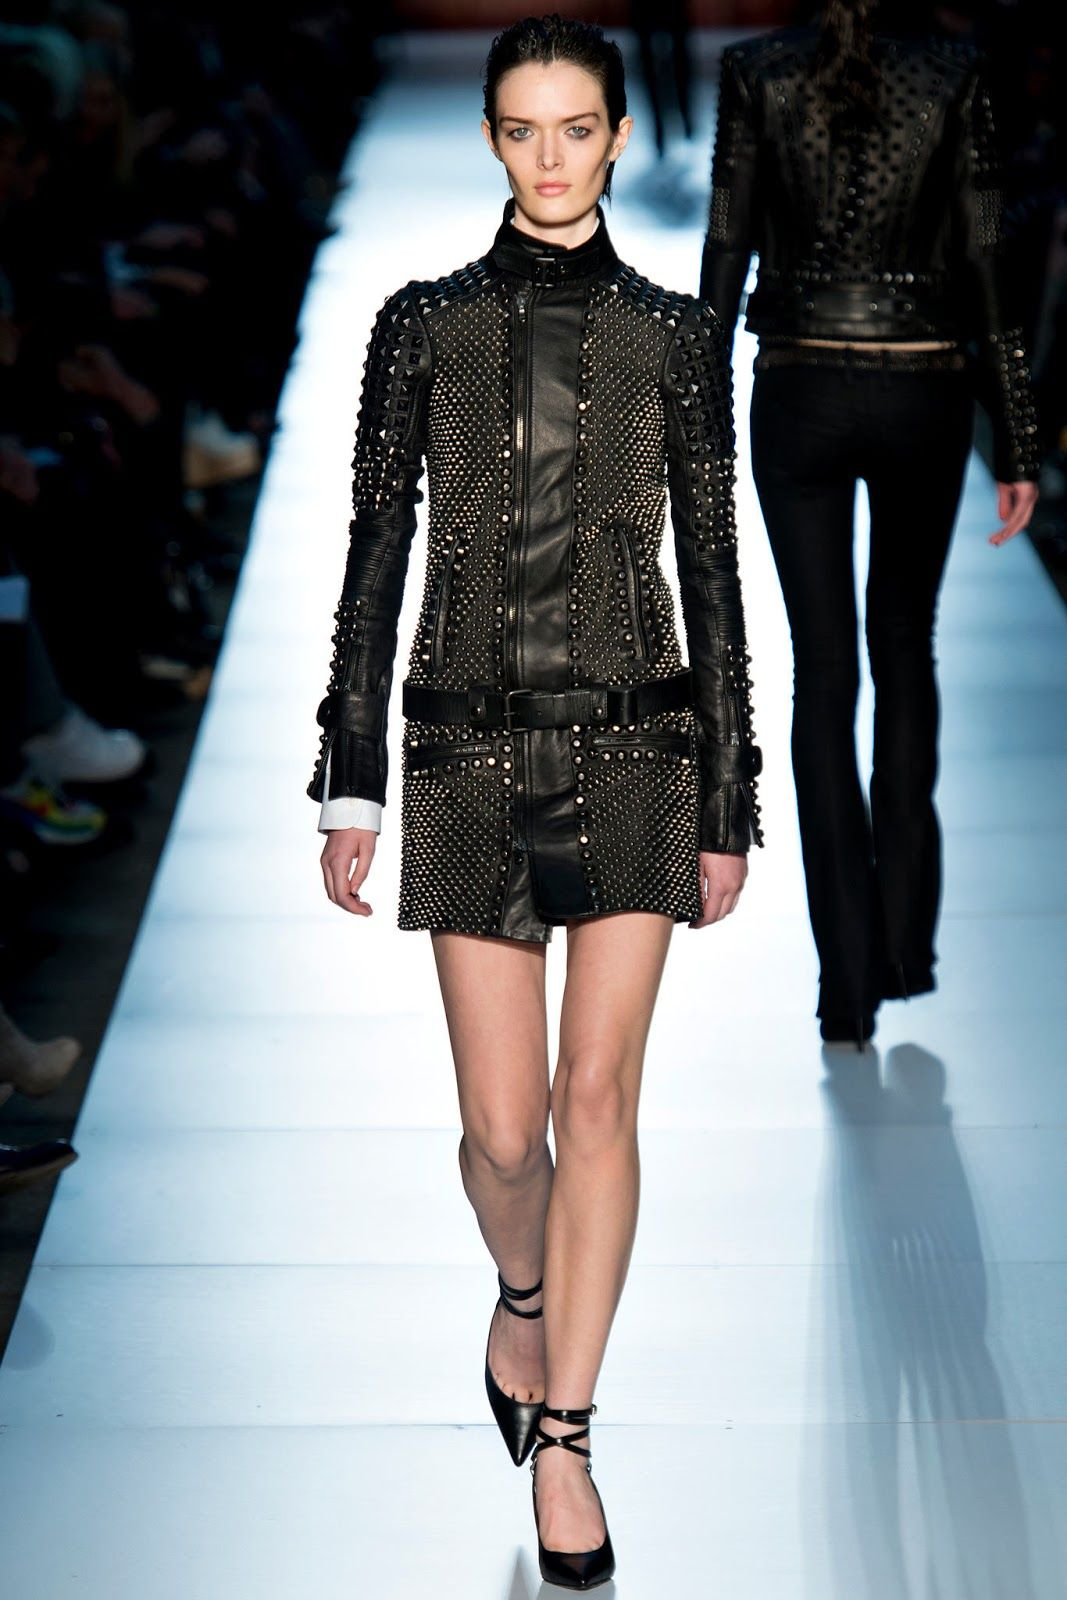 Diesel Black Gold Fall Winter 2013 Collection New York